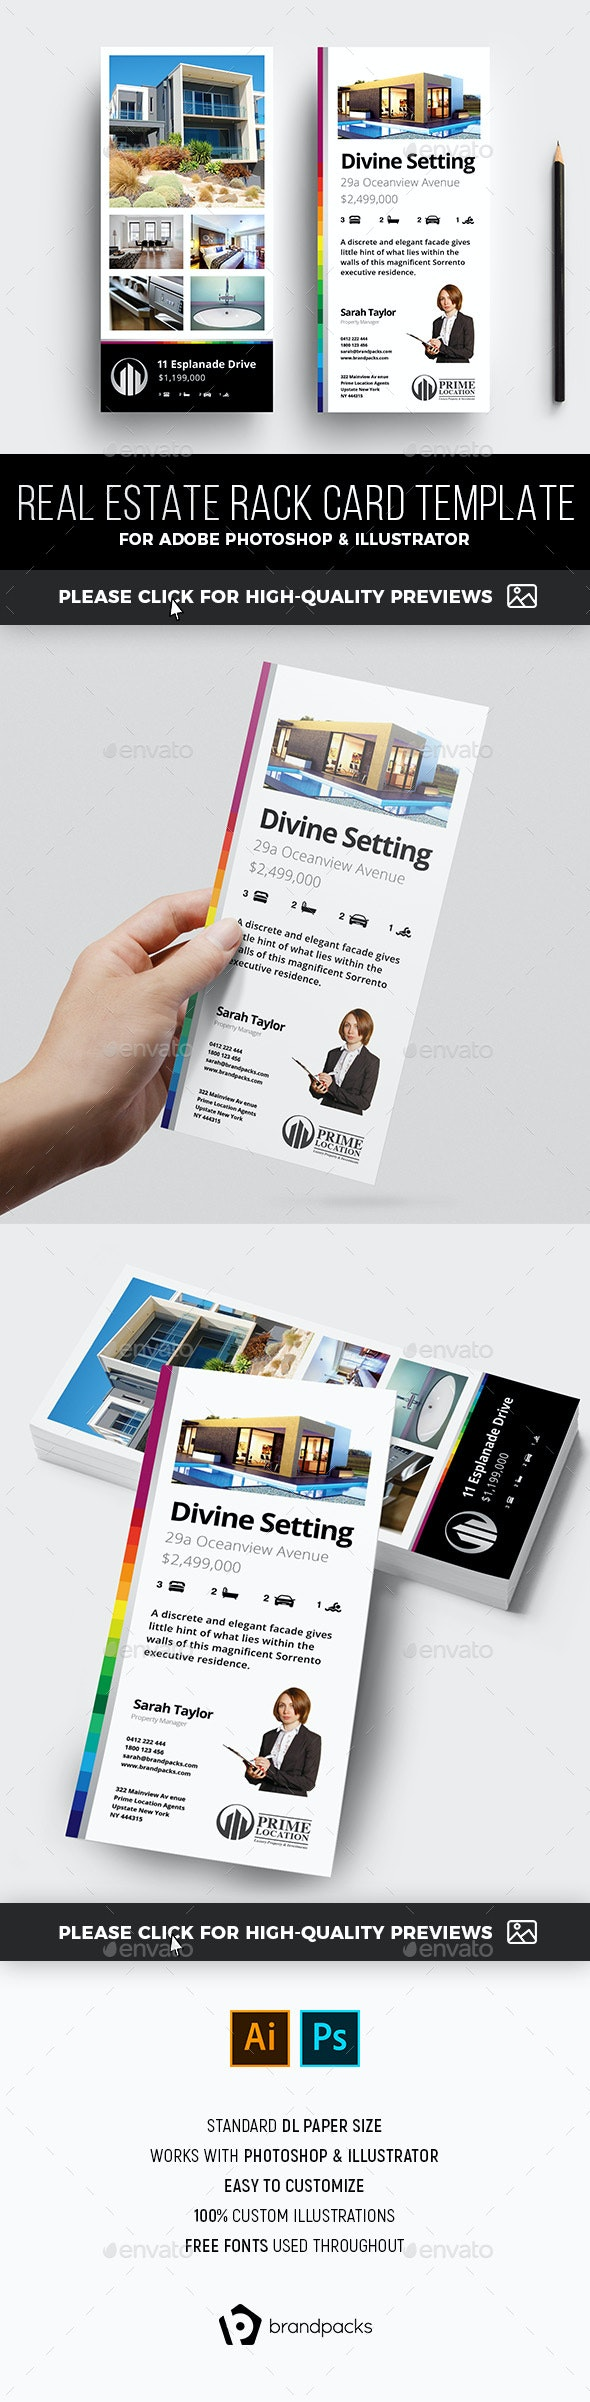 Real Estate DL Rack Card Template - Corporate Flyers